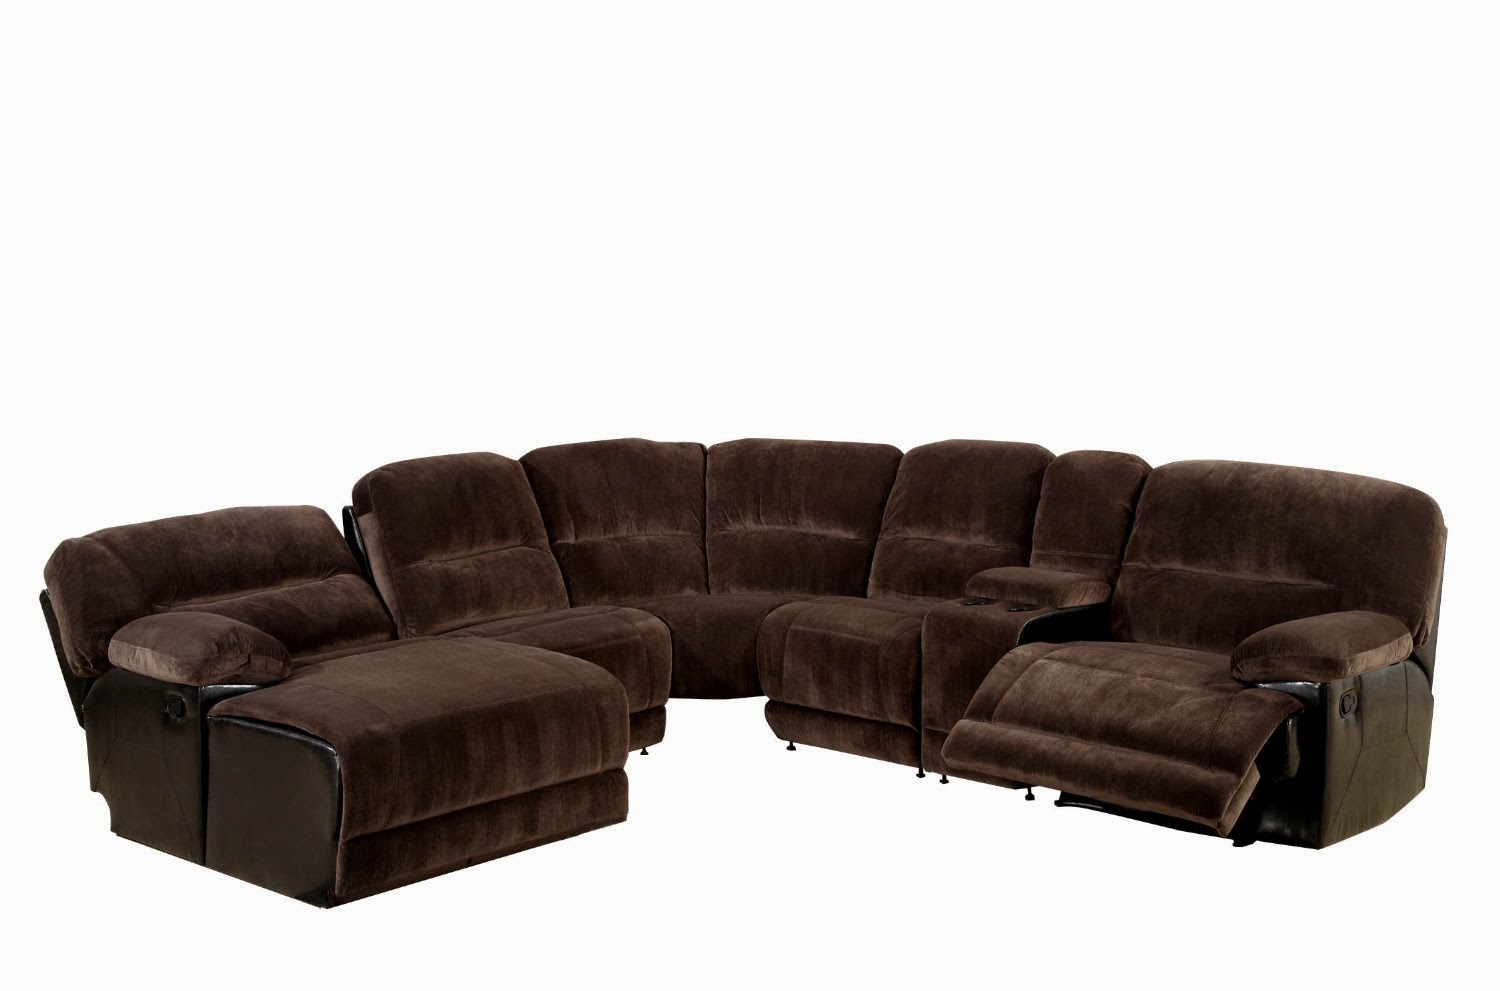 reclining sofas reclining sectional sofa. Black Bedroom Furniture Sets. Home Design Ideas